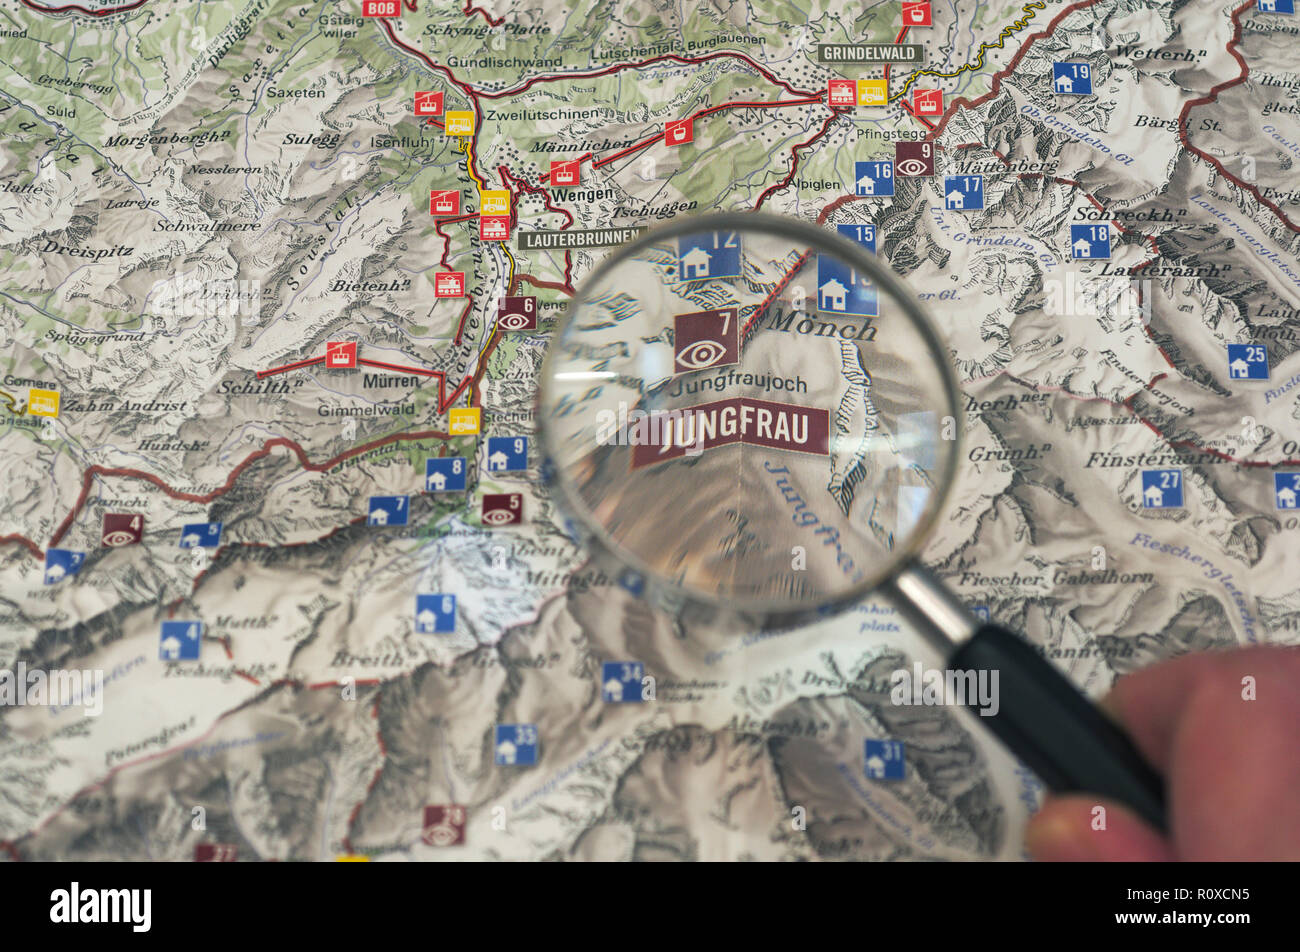 Magnifying Gl over Jungfrau Map Stock Photo: 224315537 ... on frankfurt map, chianti wine map, london map, germany map, jungfraujoch train map, top of europe map, central europe map, swiss map, zermatt map, lugano map, western europe map, matterhorn map, interlaken map, vatican city map, bern map, st. moritz map, barcelona map, indo-pacific map, sub-saharan map, pennine alps map,